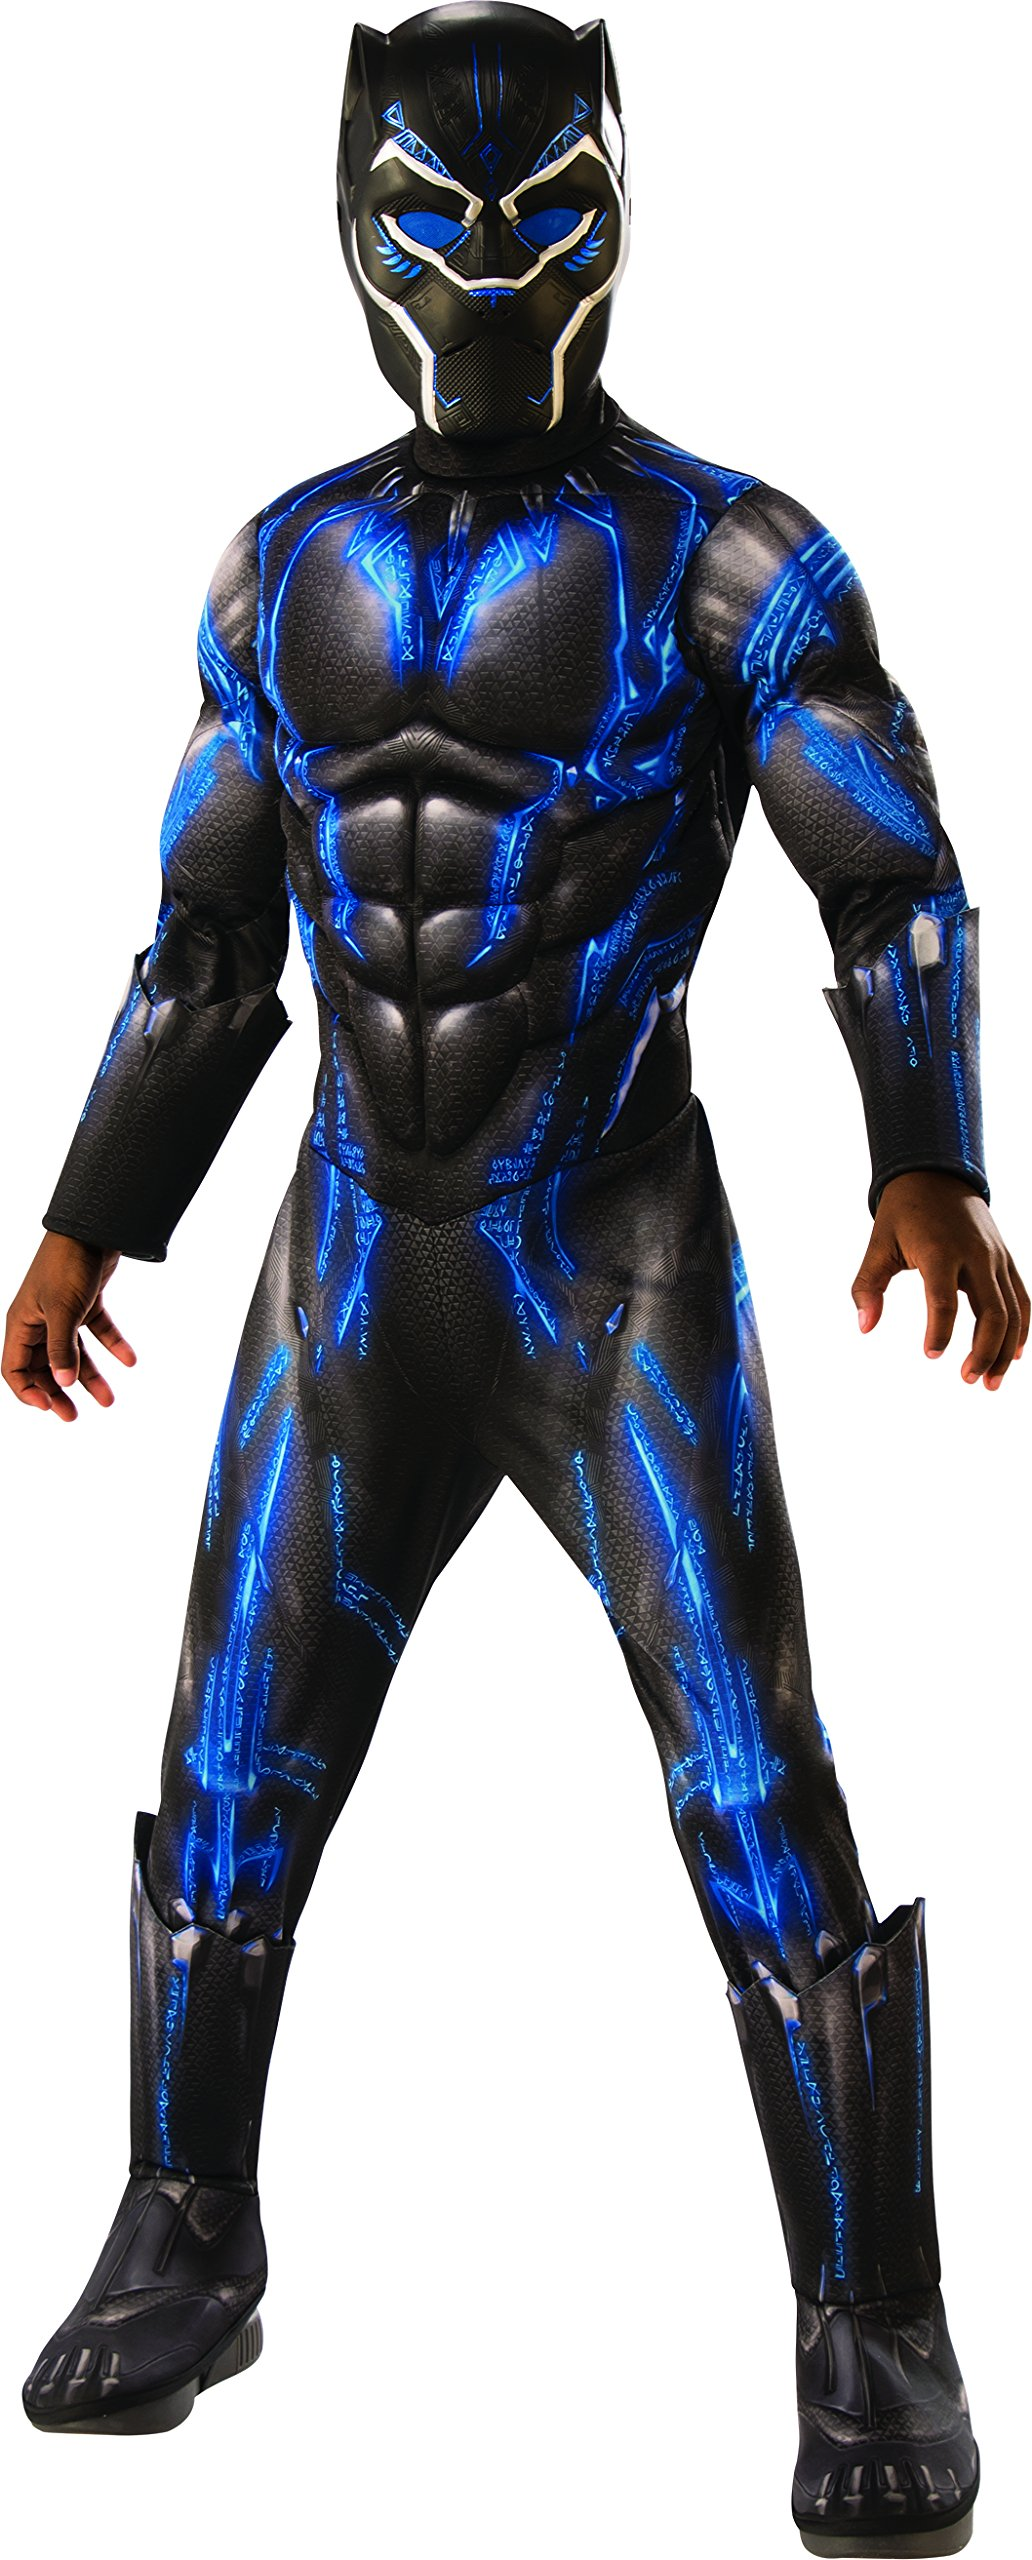 Rubie's Costume Deluxe Black Panther Child's Costume, Blue, Large